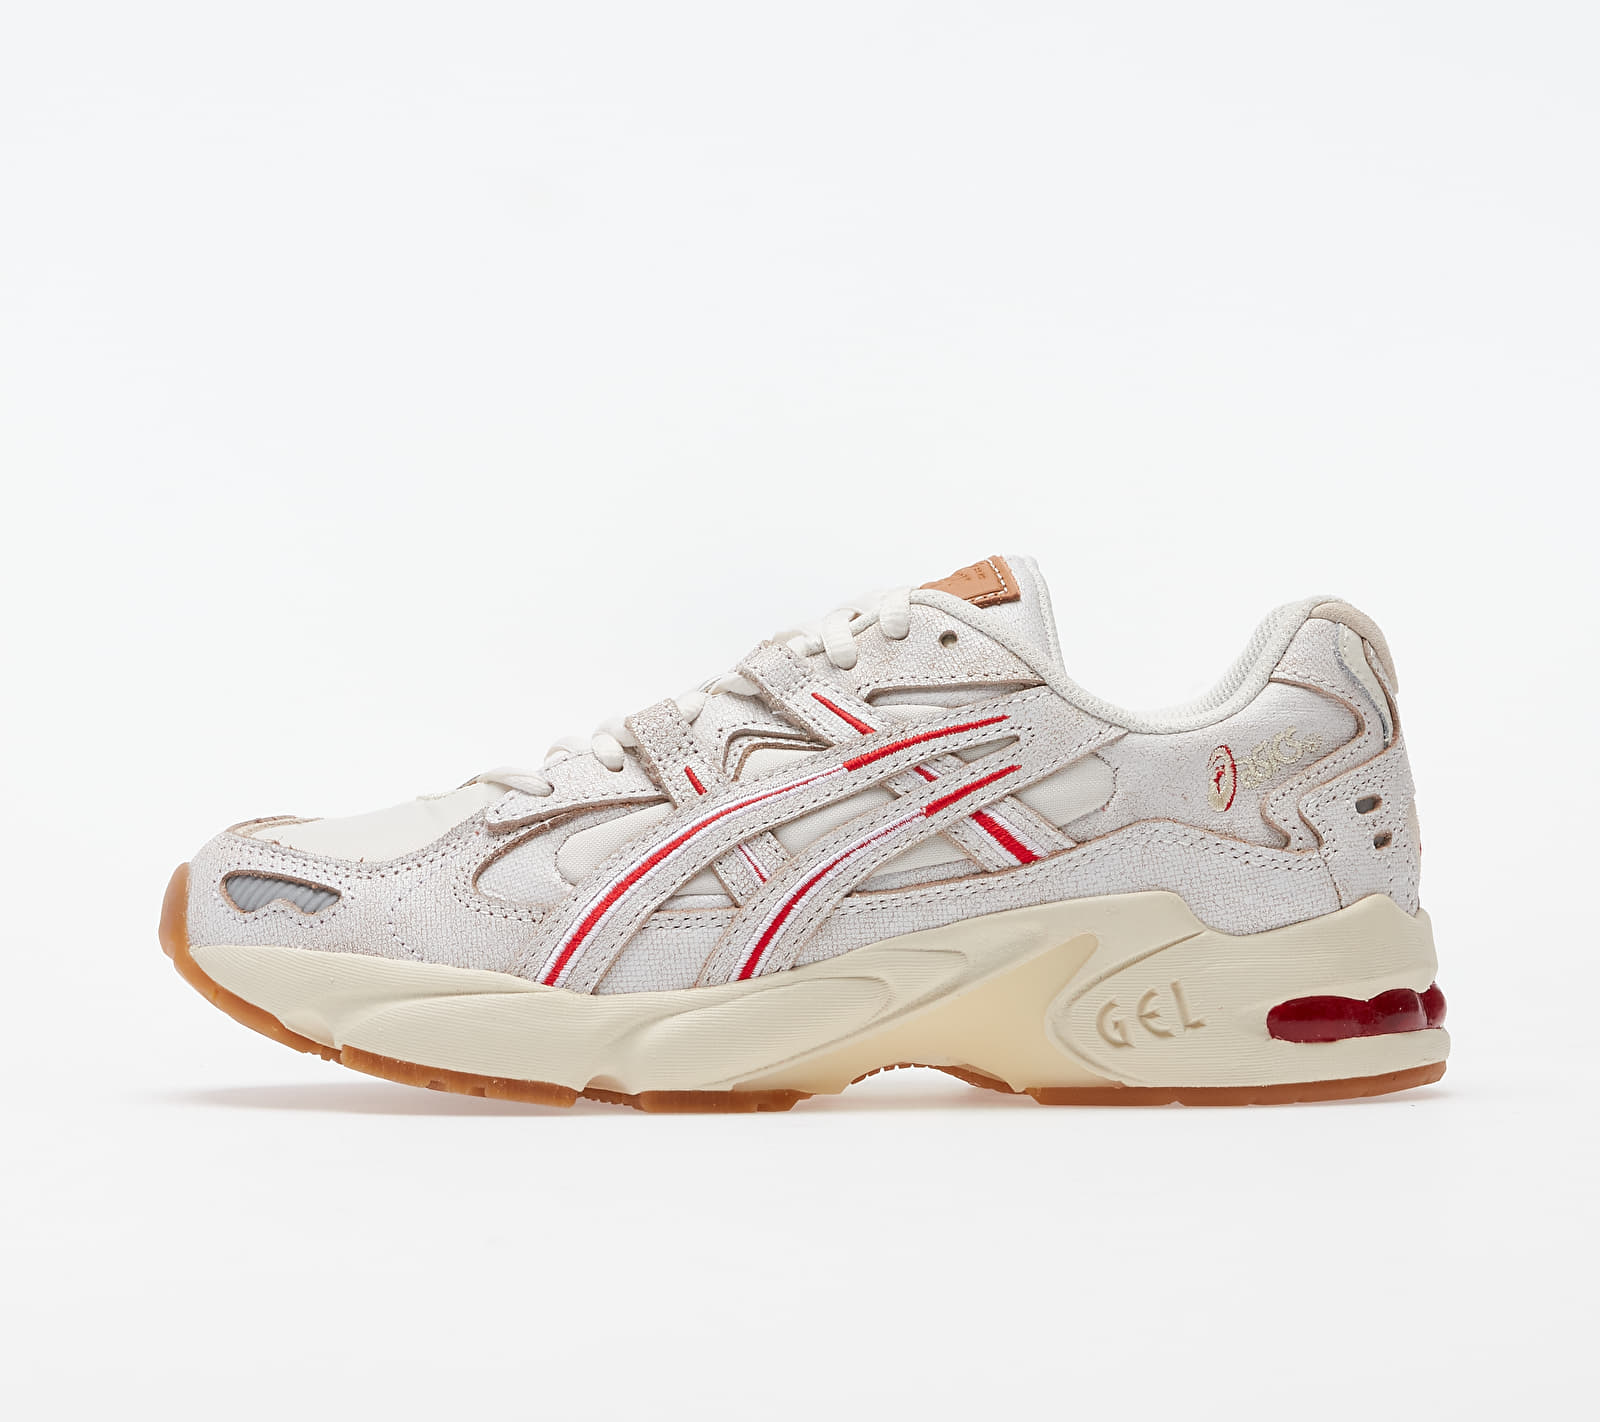 Asics Gel-Kayano 5 OG Cream/ White EUR 38